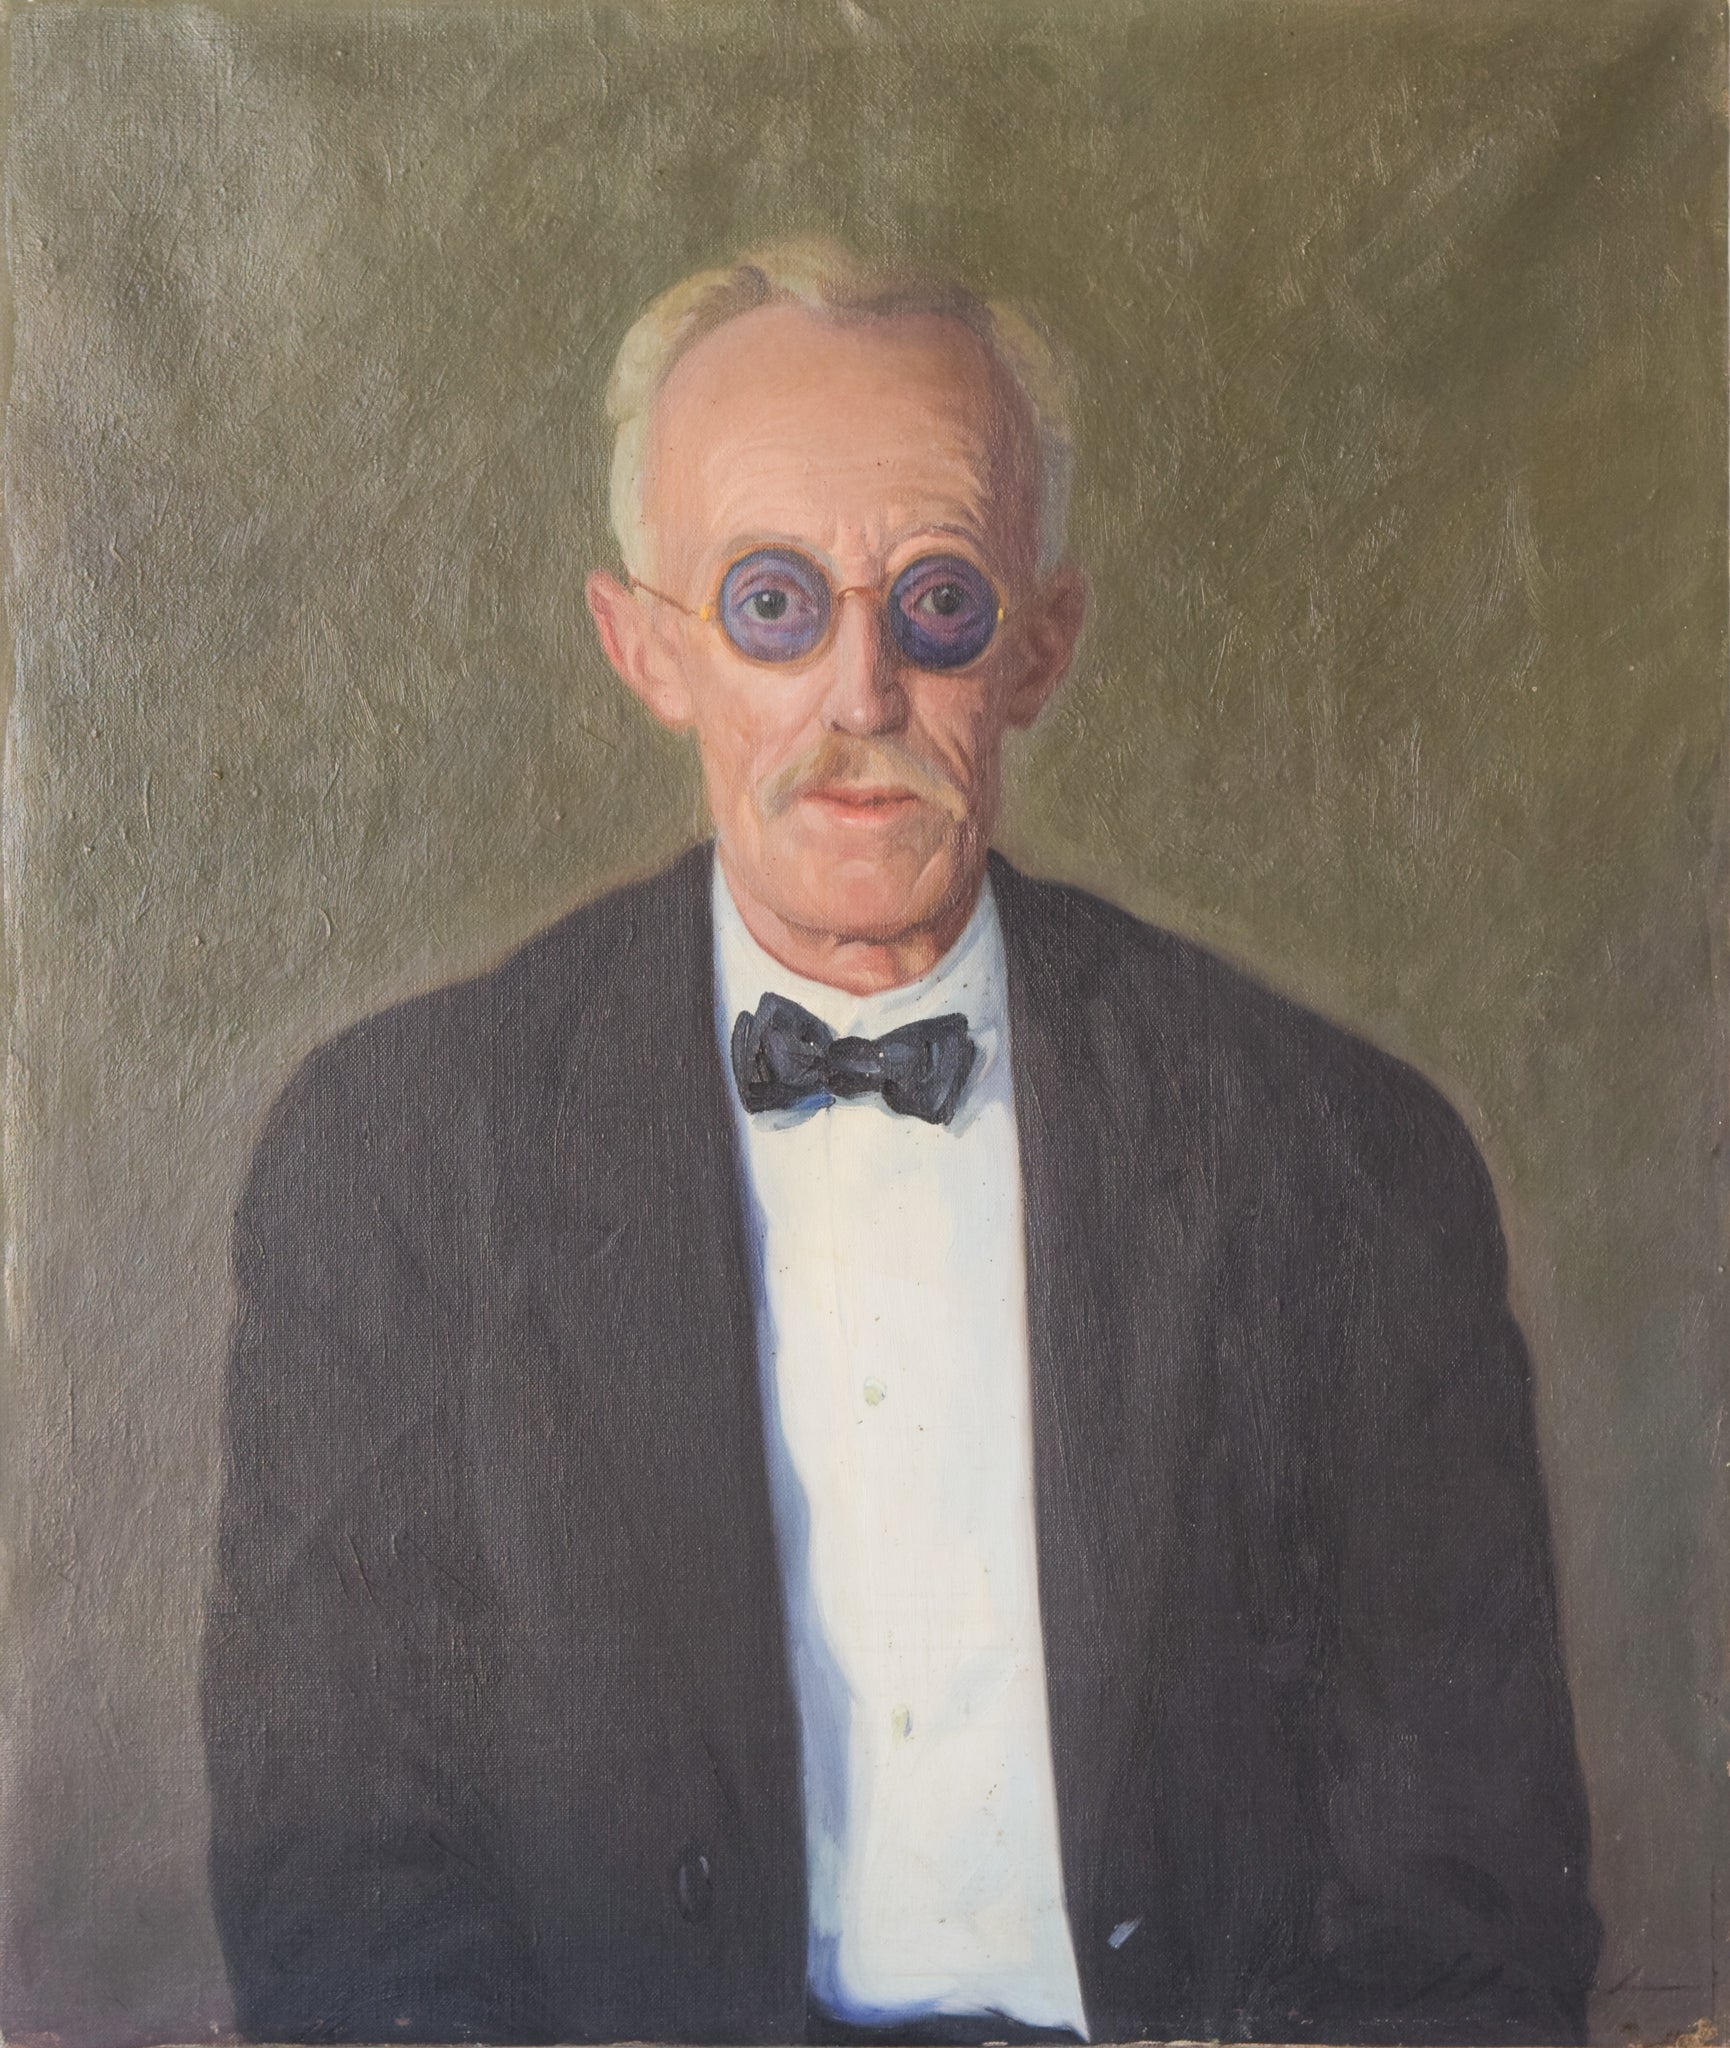 Large Portrait in Oil of an Old Man with Glasses